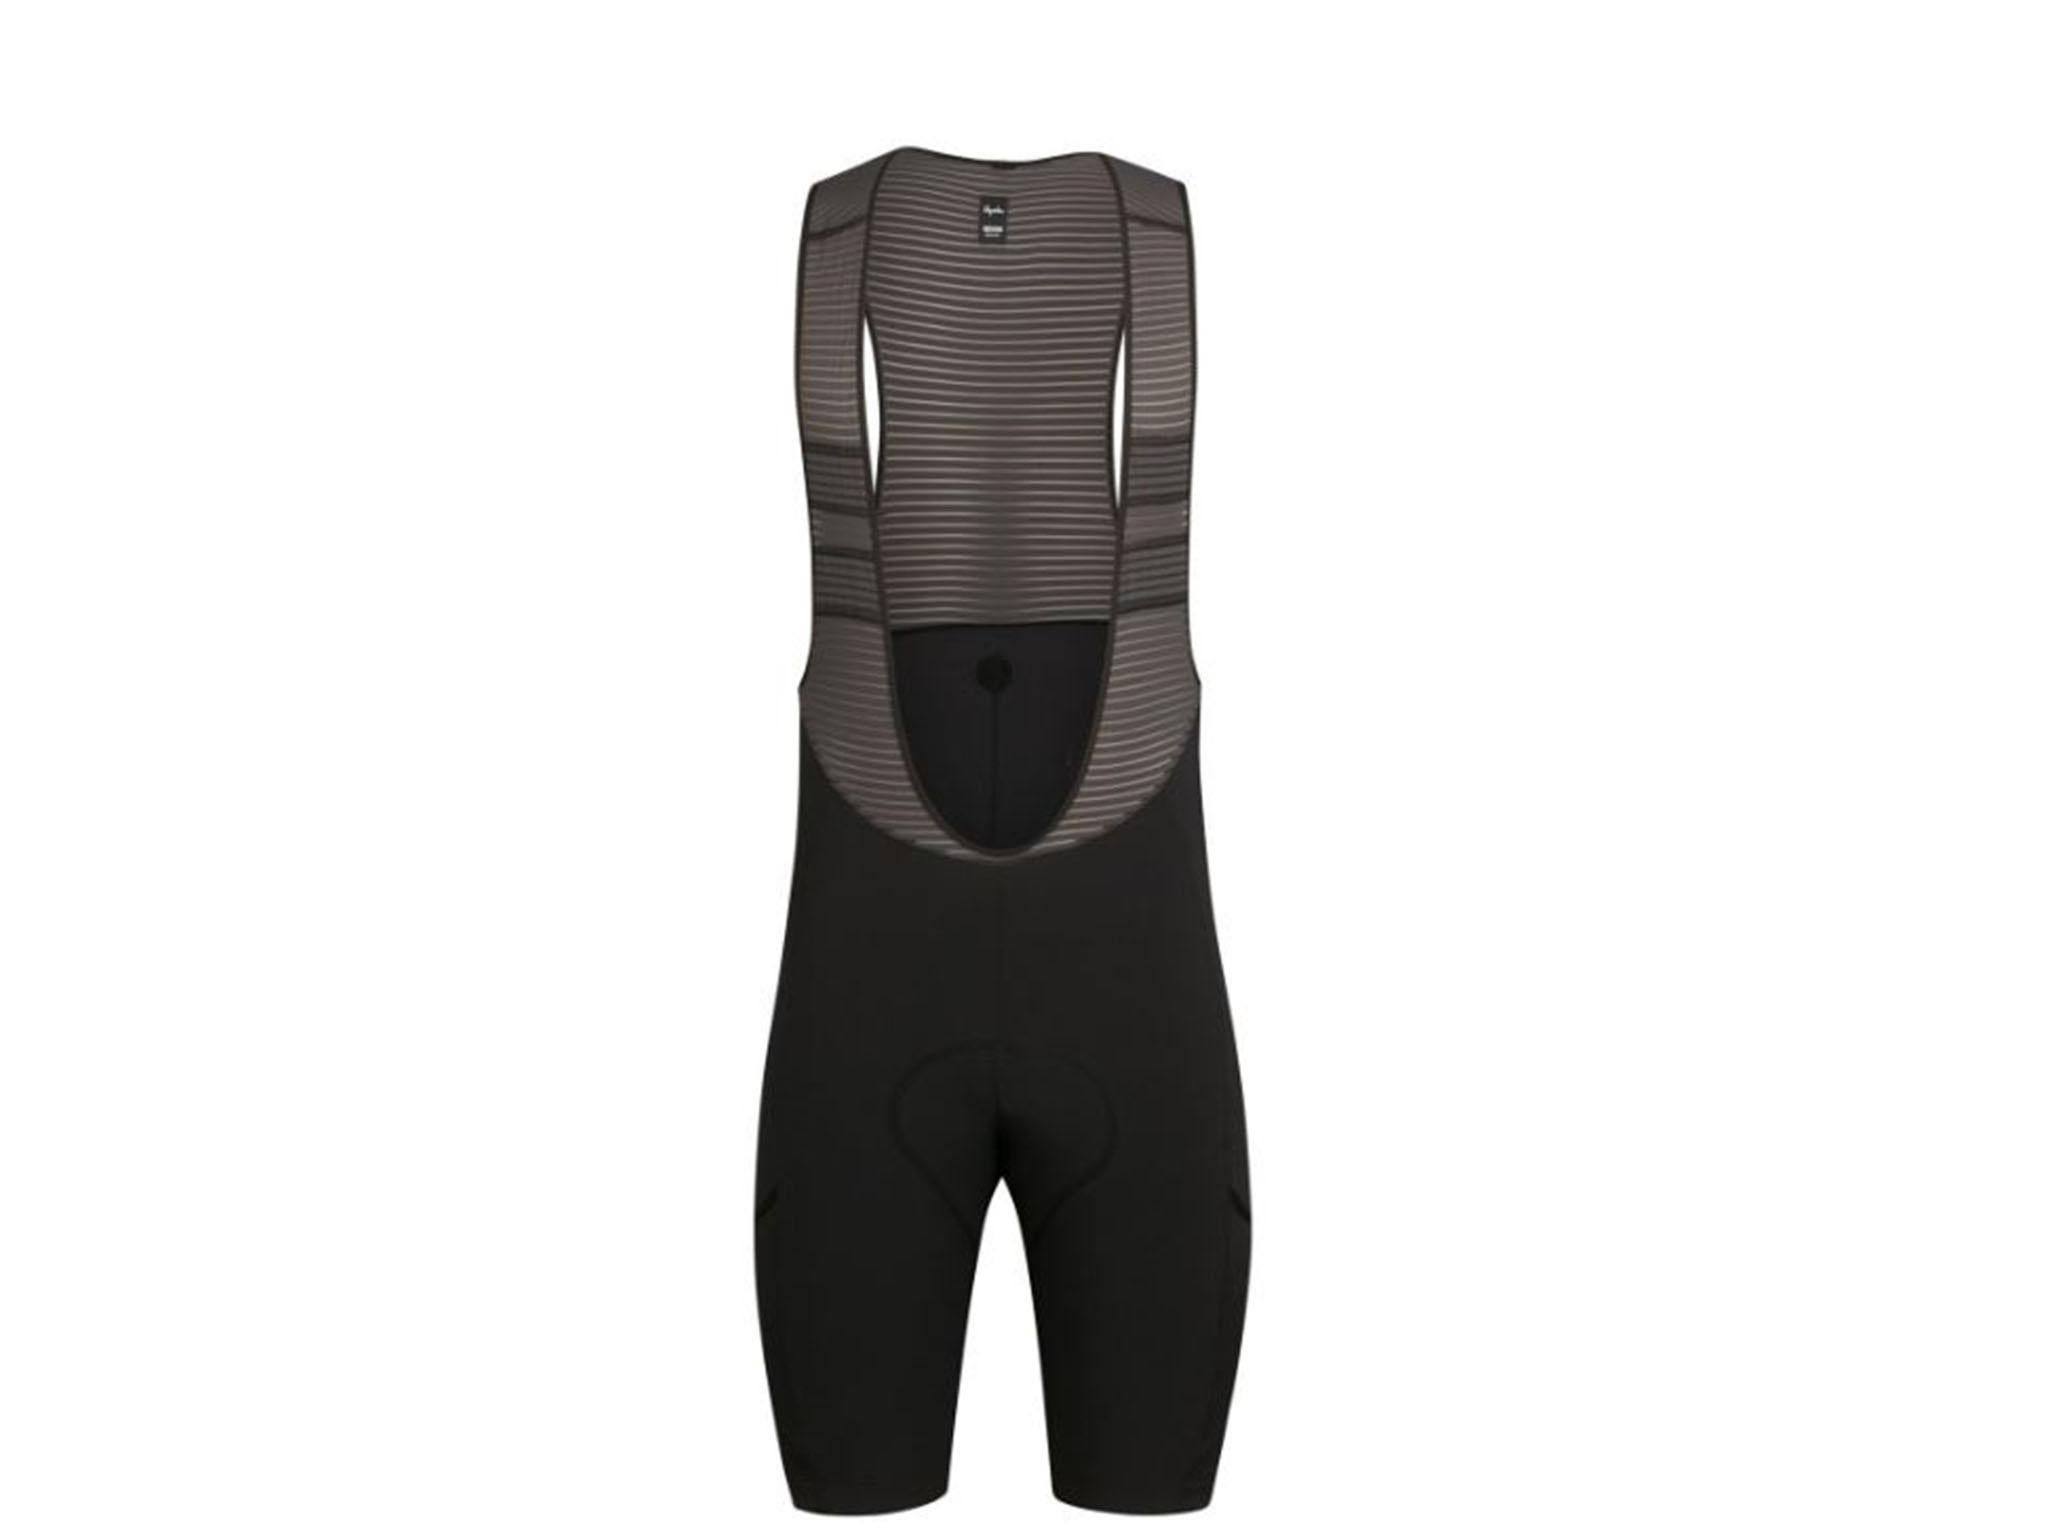 12 Best Mens Cycling Bib Shorts The Independent Apparel Heres Something Different To Upset Purists Bibshorts With Pockets Theyre Aimed At Bikepackers And Gravel Riders But Theres Nothing Stop You